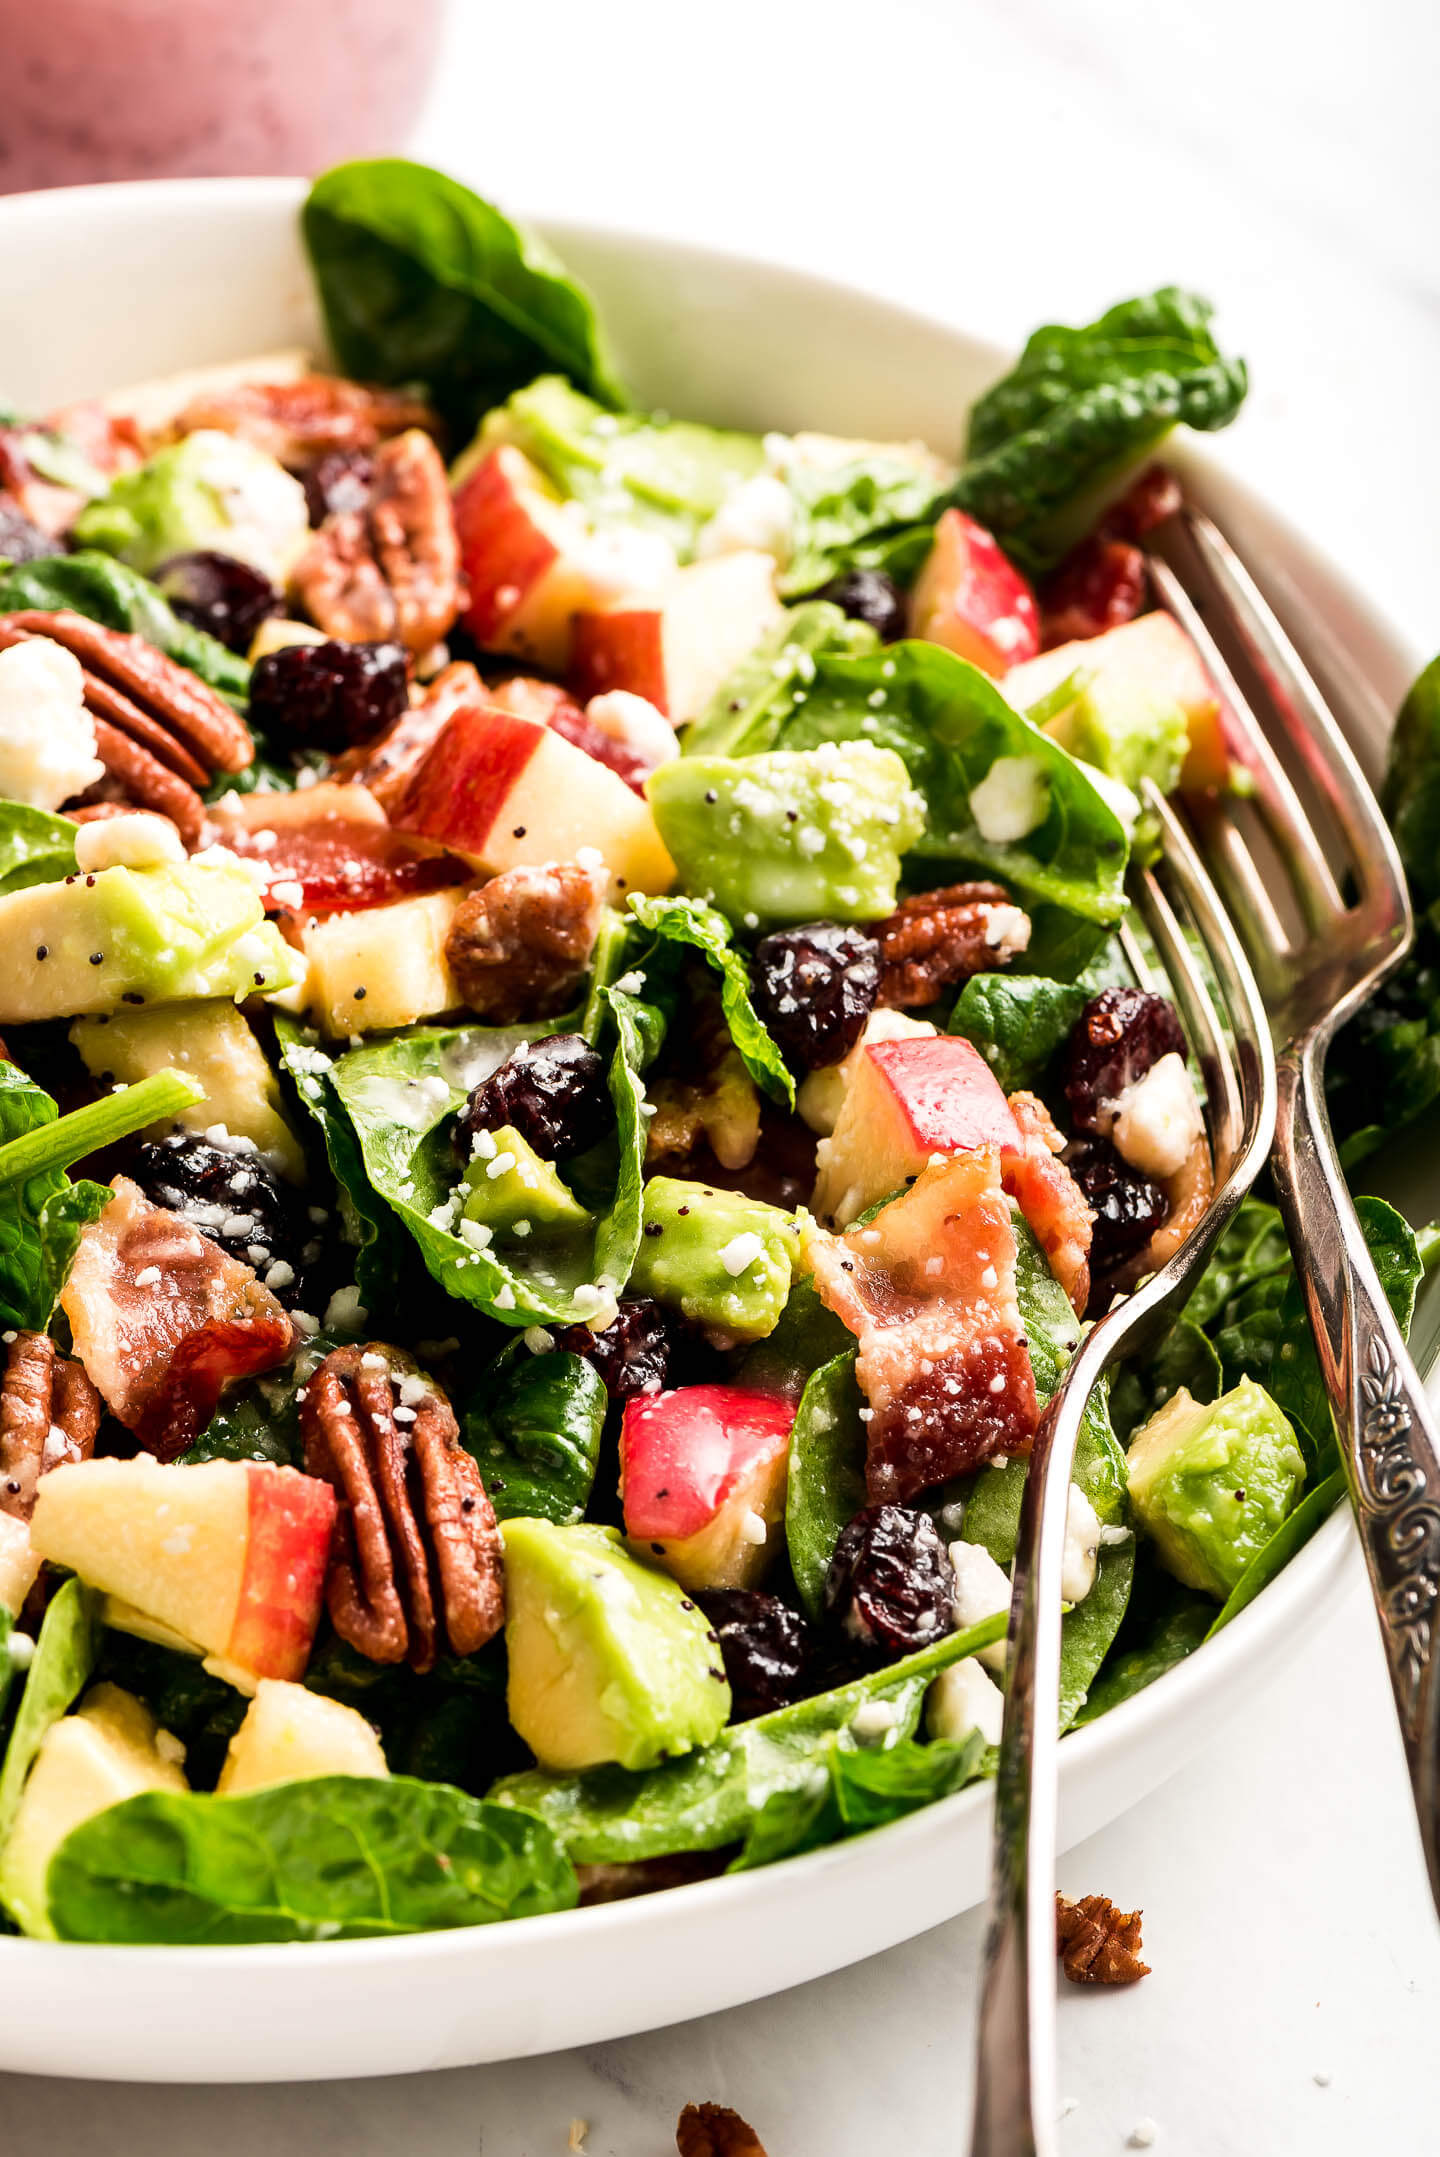 A close-up shot of Apple & Bacon Spinach Salad tossed in poppy seed dressing with two forks in the side of the bowl.